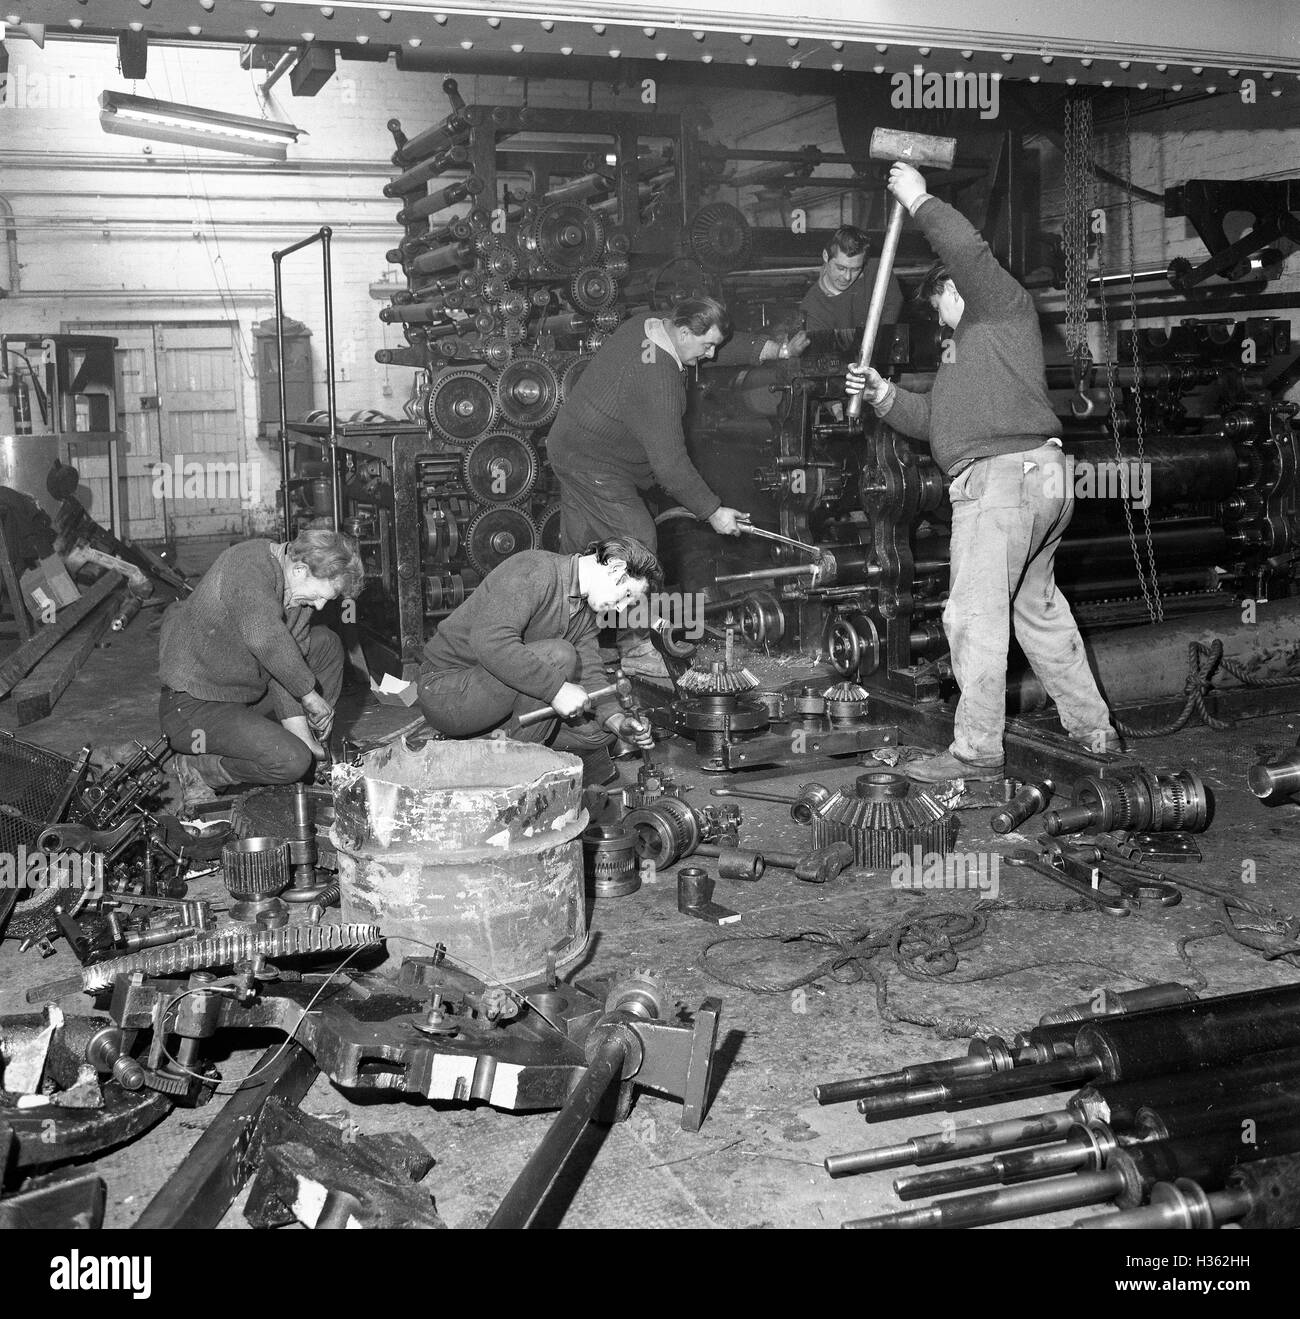 Scrap Metal Merchants Smashing Breaking Up Old Newspaper Printing Press Presses In 1960s Uk James Rollason Dismantling The Wellington